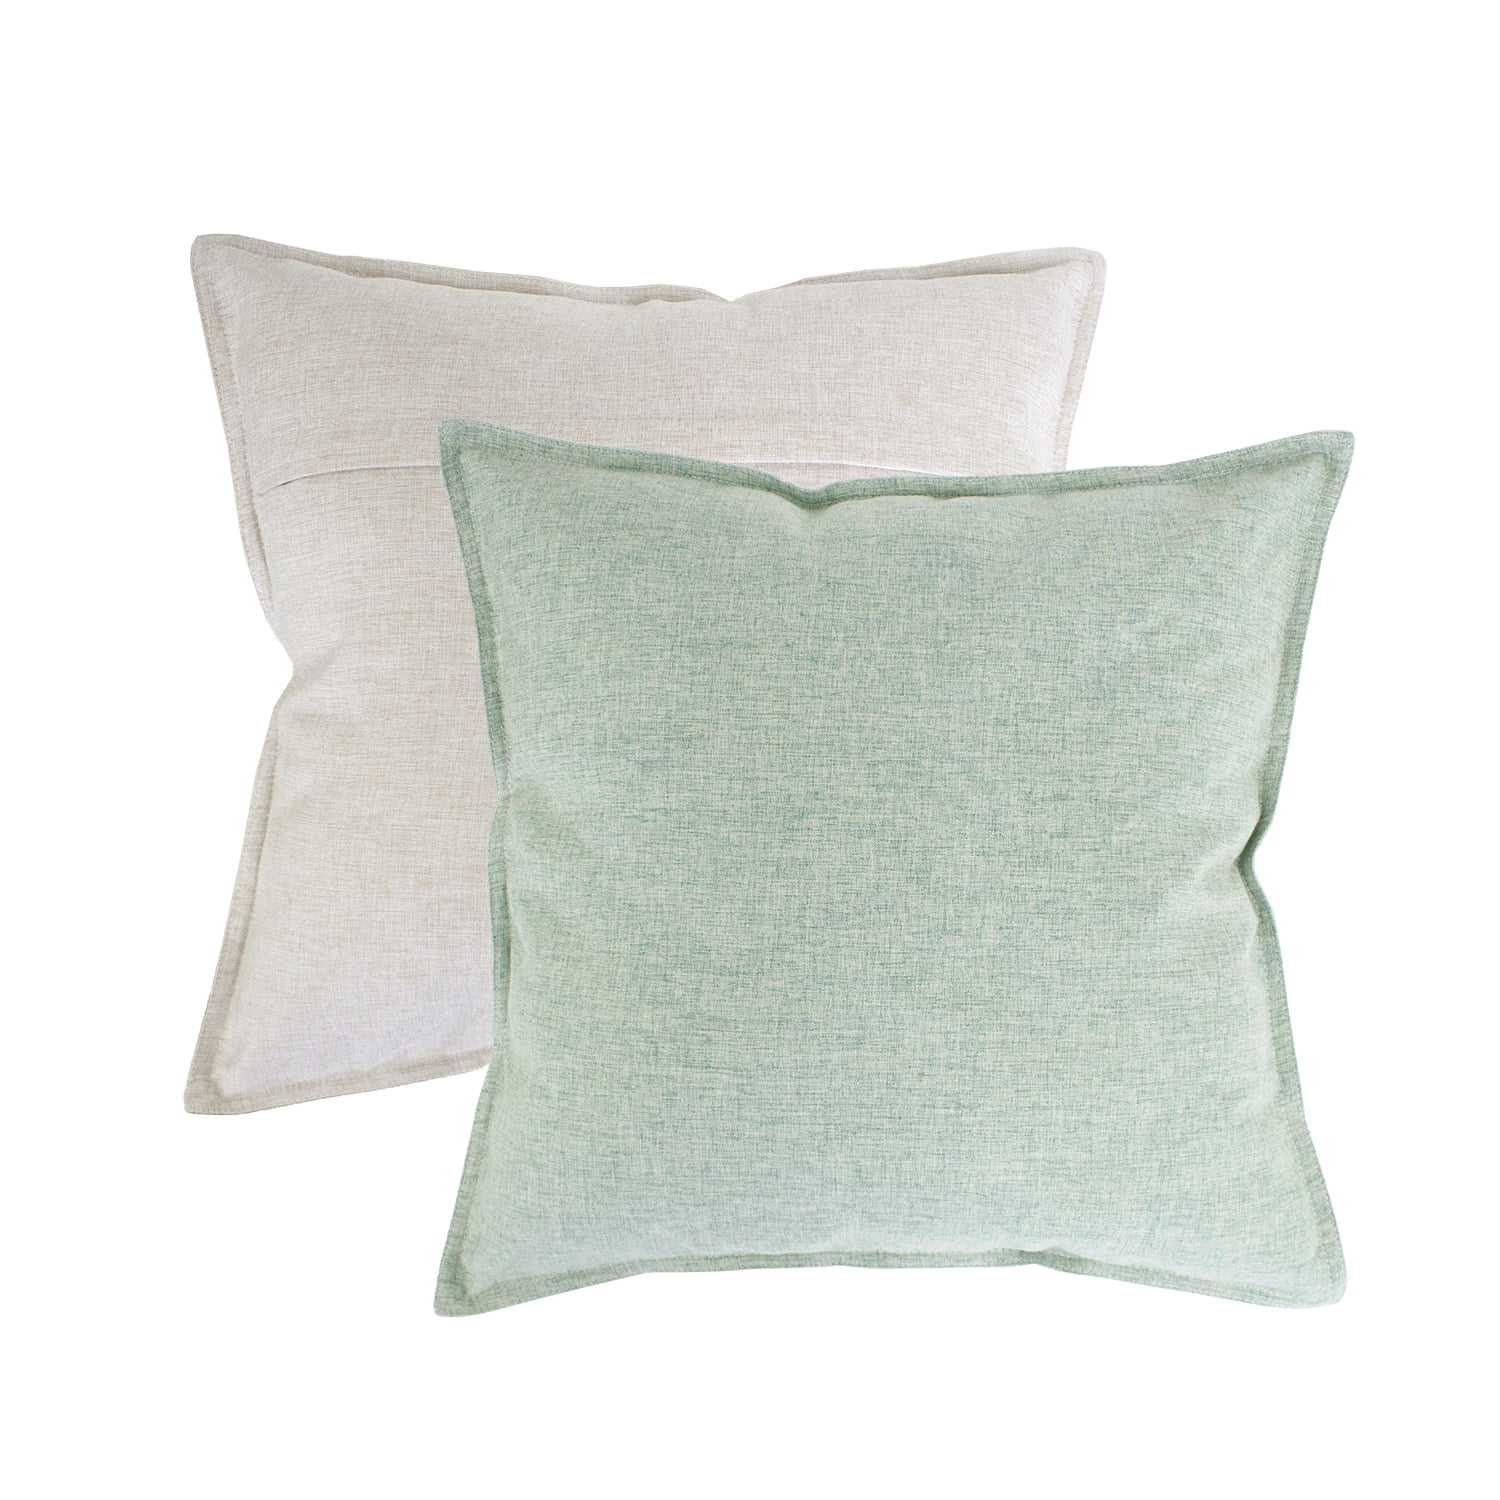 fennco styles contemporary neutral solid textured reversible two tone decorative throw pillow cases 18 x 18 inch set of 2 sage green throw pillow